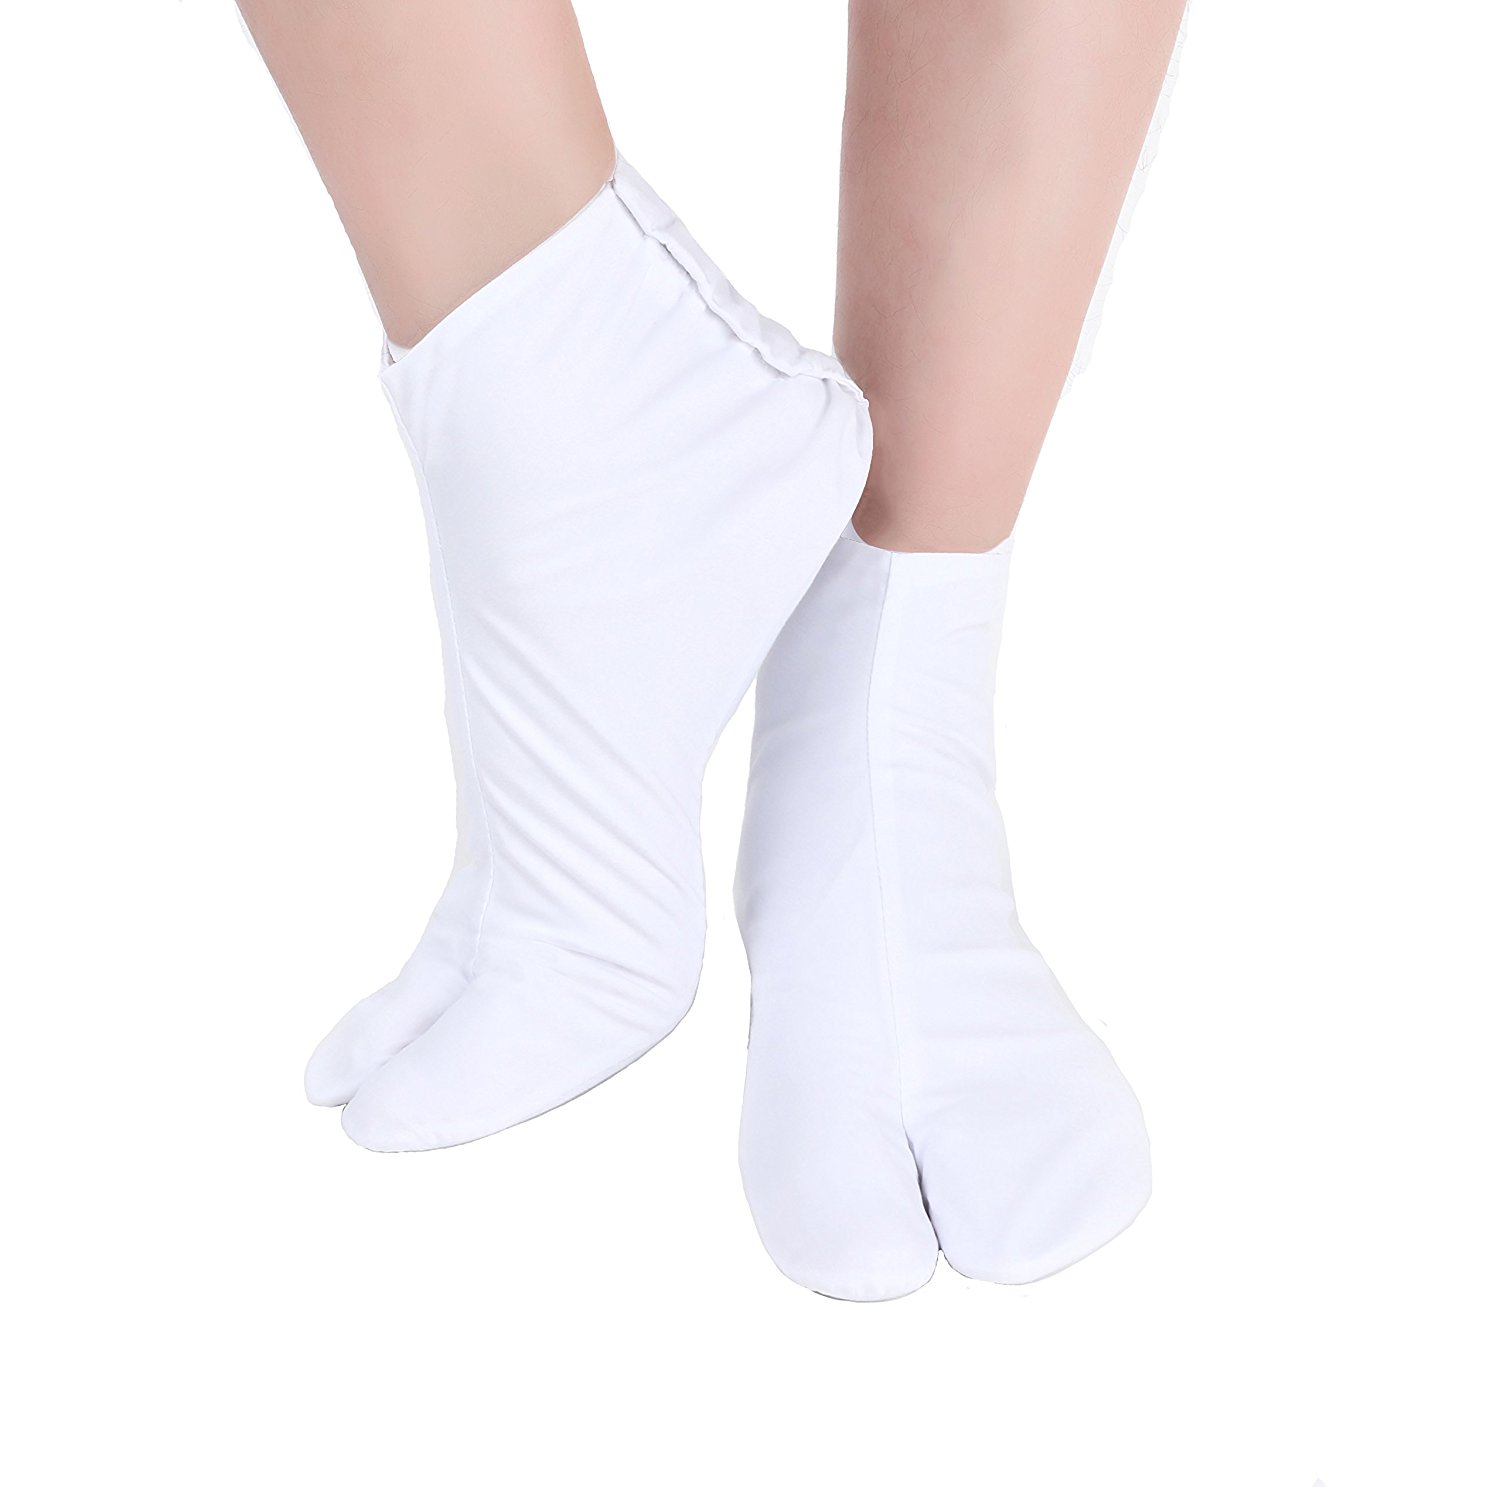 837d98cba53a74 Get Quotations ·  Vigo Socks  Flip Flop Socks Indoor Tabi Socks Sandal Socks  Black   White